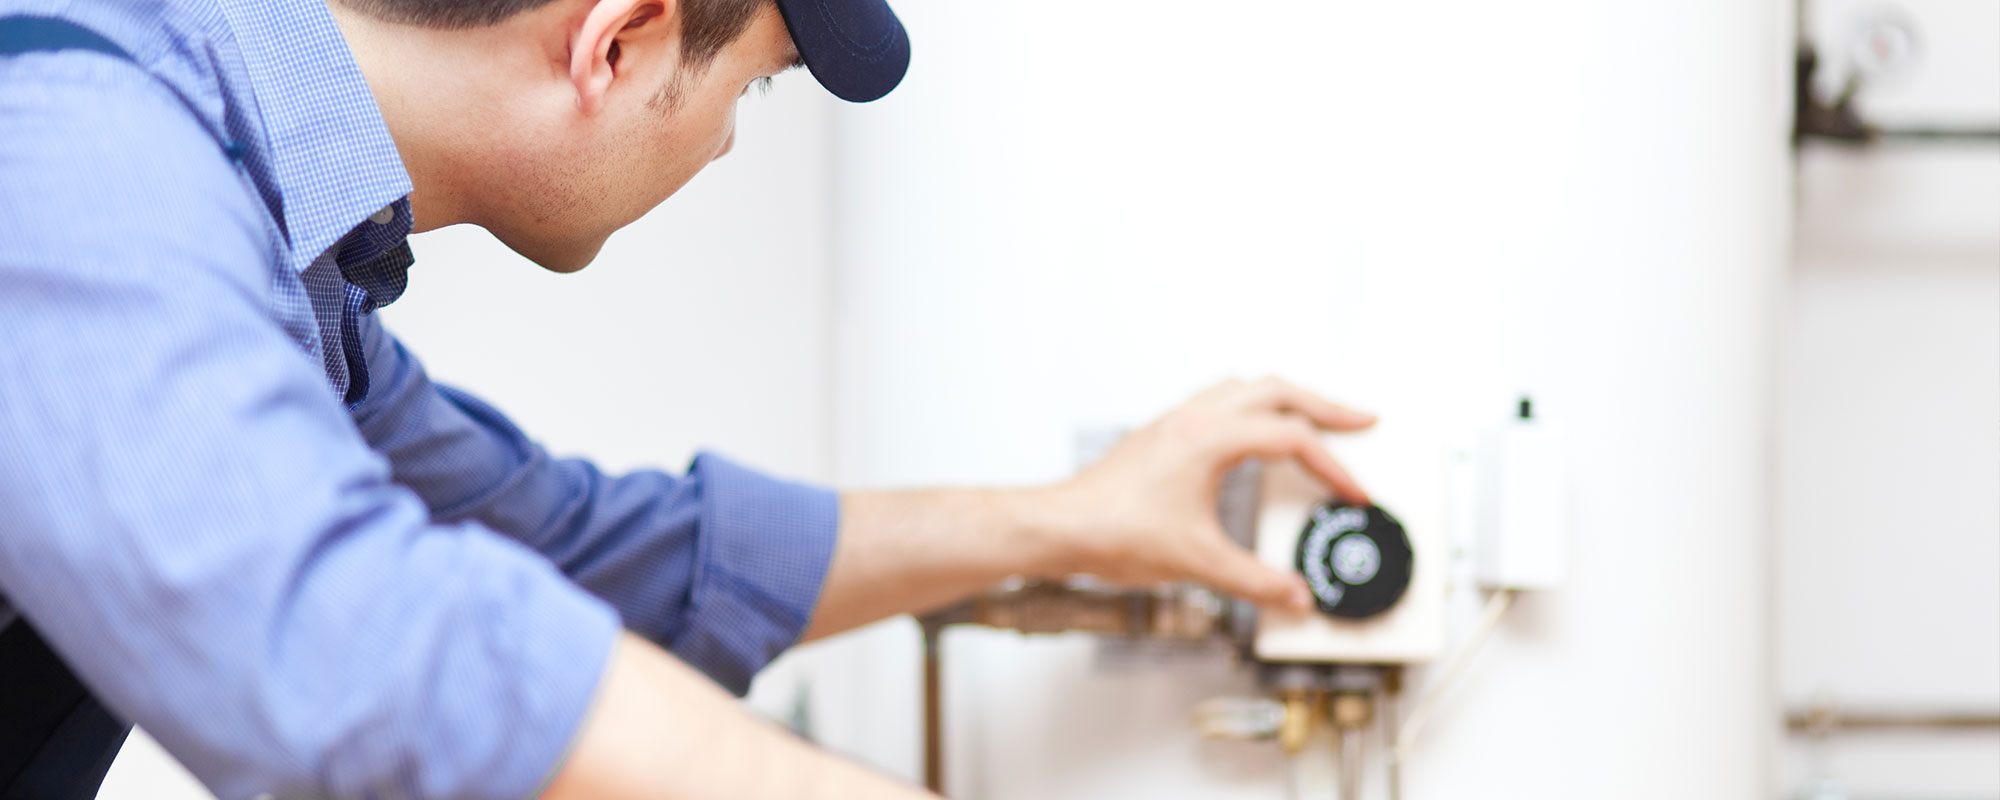 A man working on a water heater representing the water heater services by John J. Cahill servicing Chicago, IL